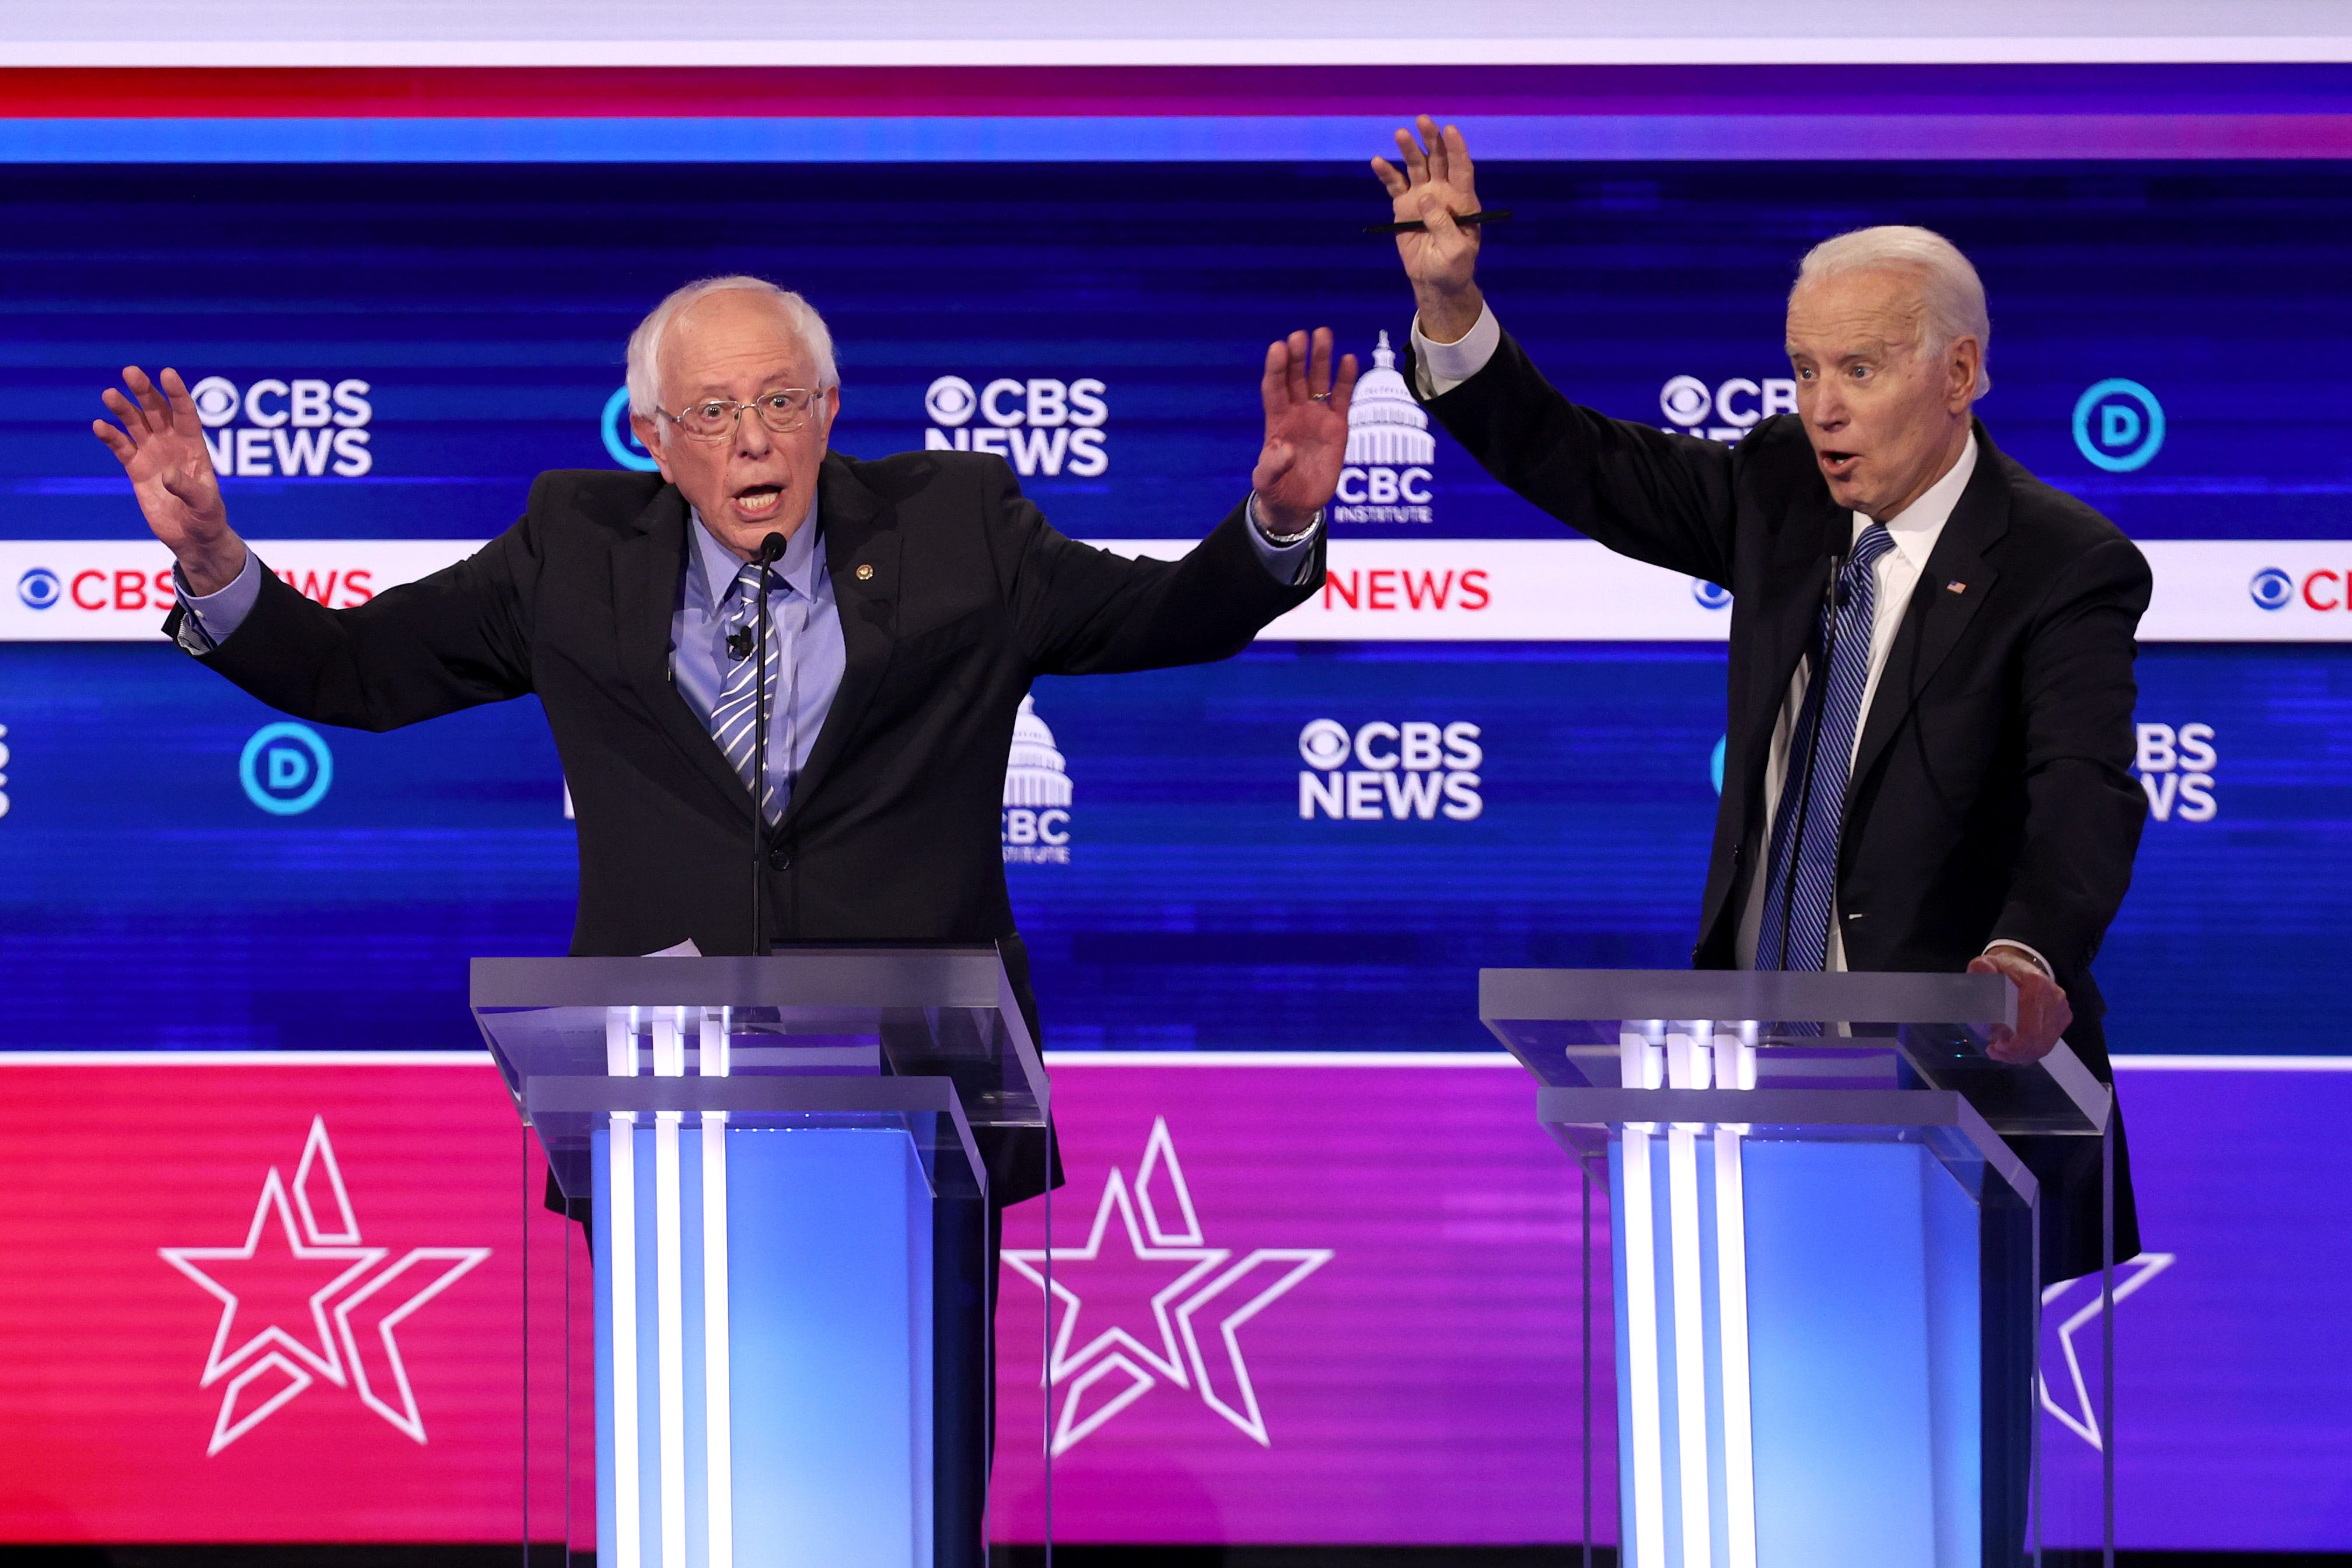 Sanders pressed on Medicare math, Biden guarantees a win: How each candidate fared at crucial South Carolina debate